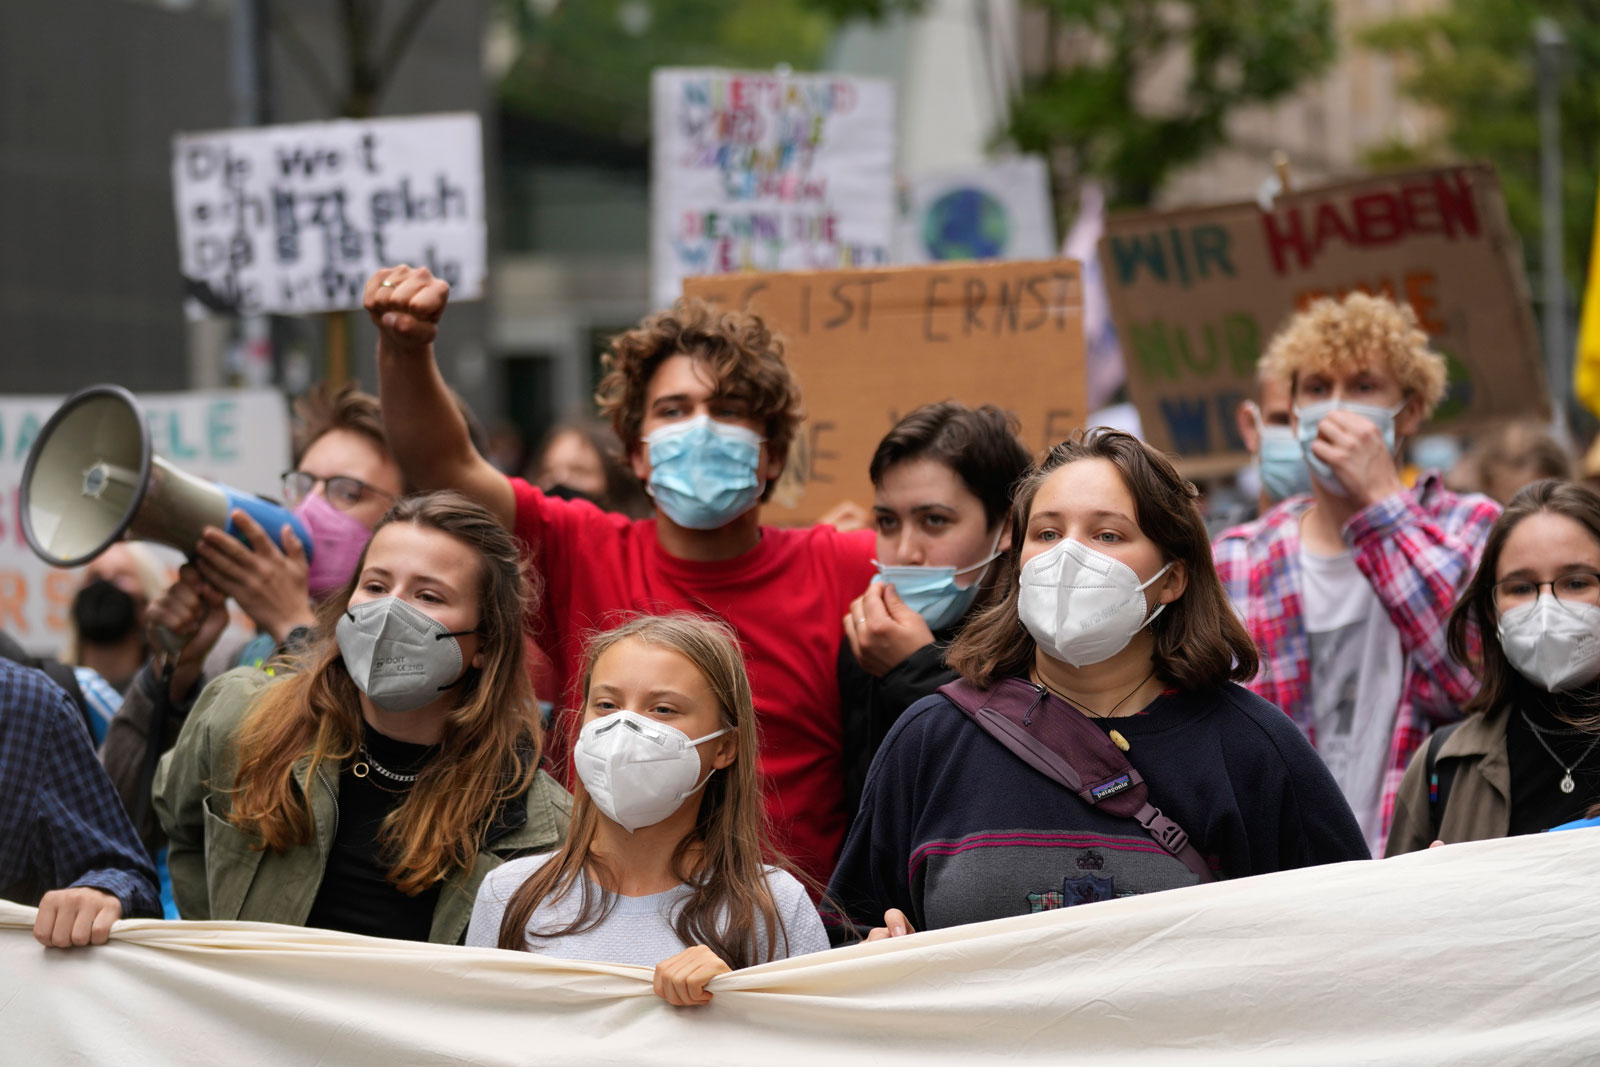 Swedish climate activist Greta Thunberg, center, joins a Fridays for Future global climate strike in Berlin, Germany on Friday, September 24.